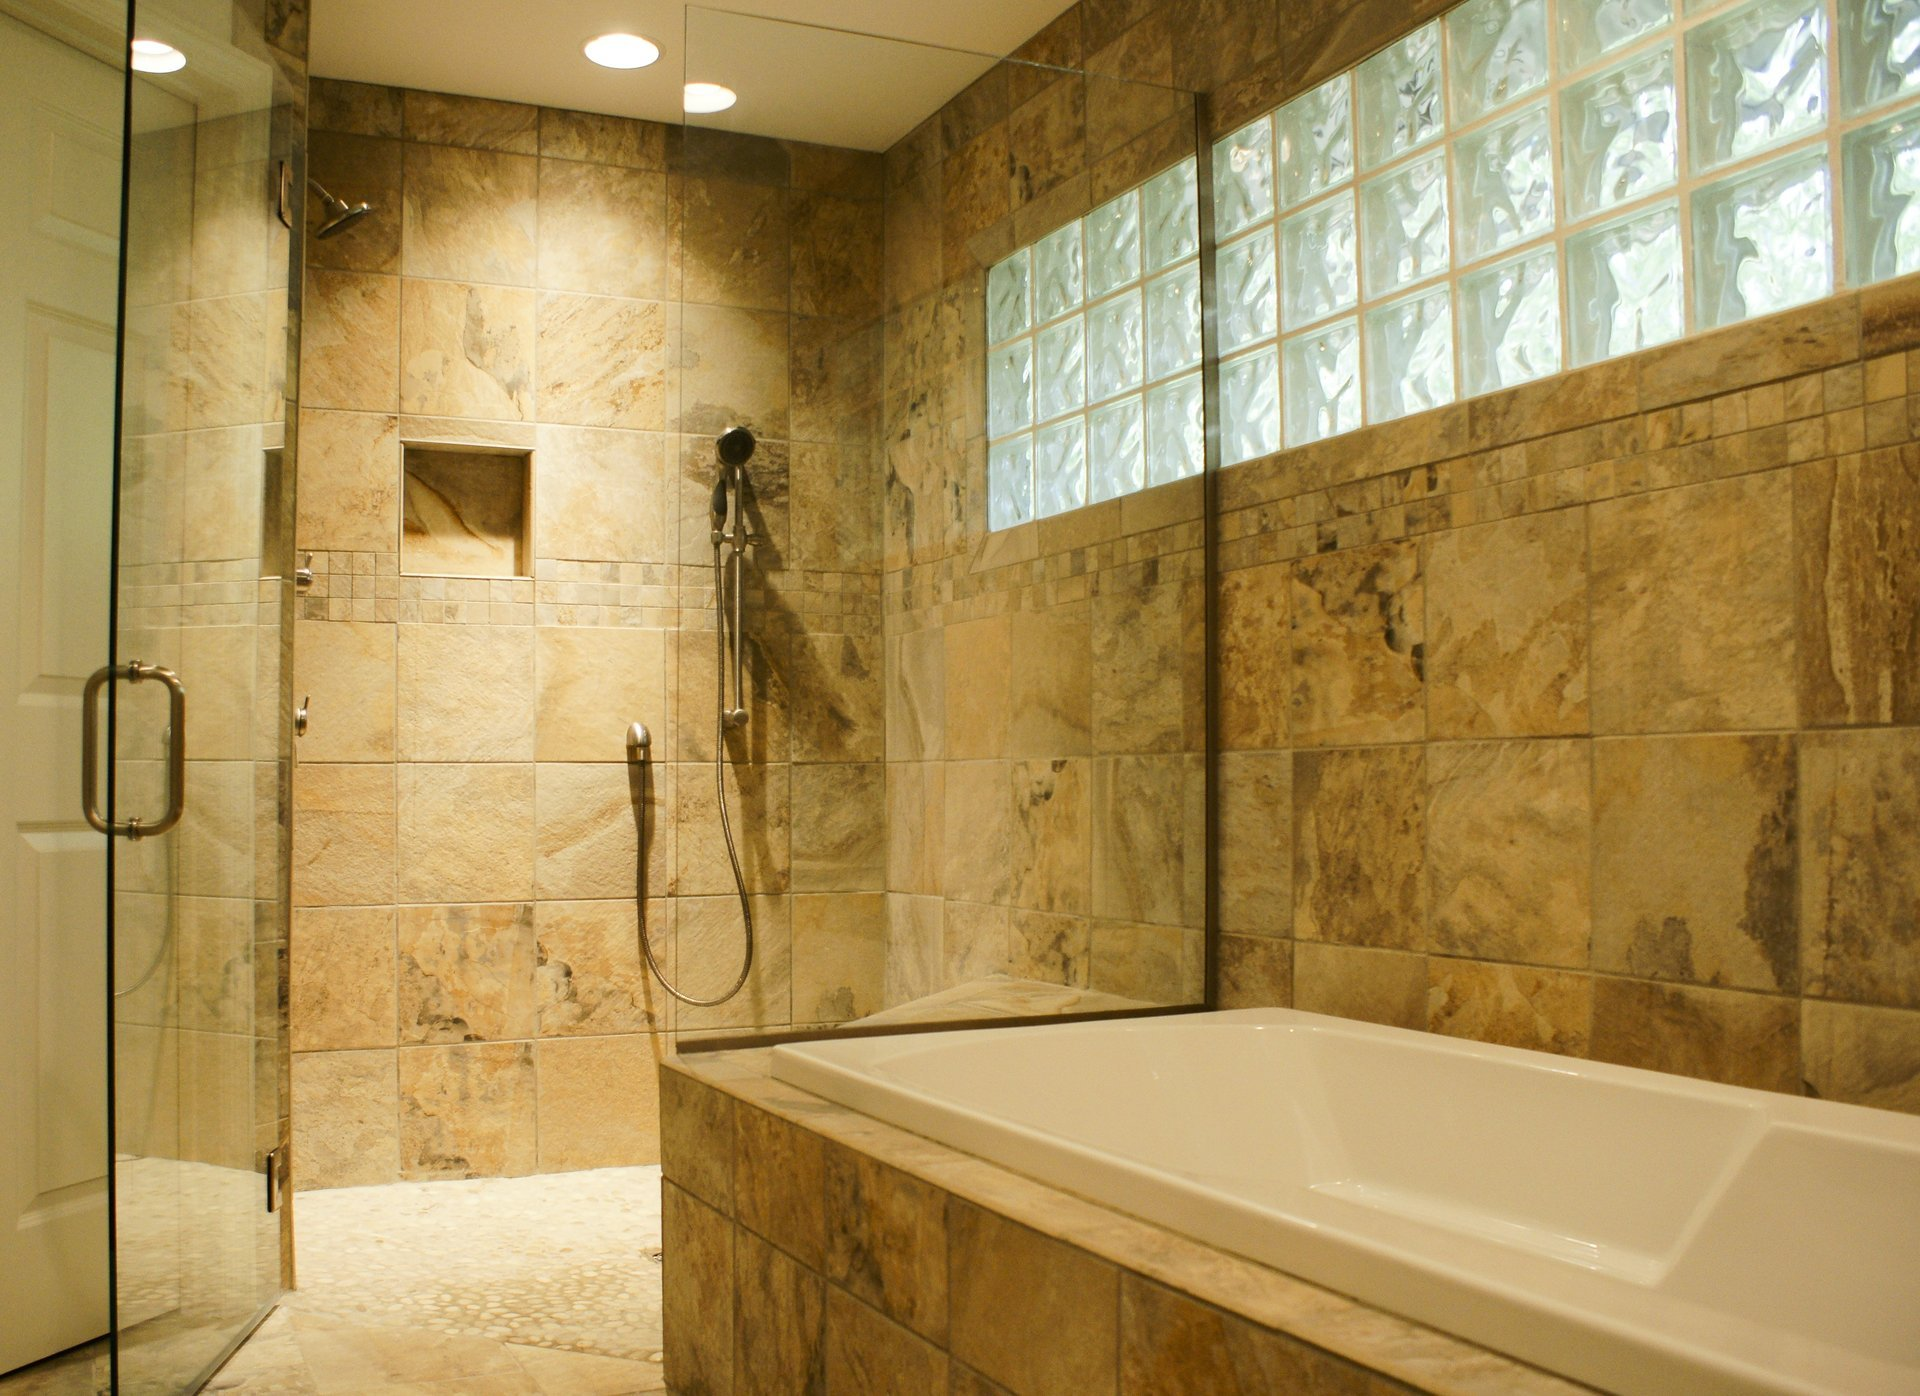 Another beautiful Aging in place shower and bath.